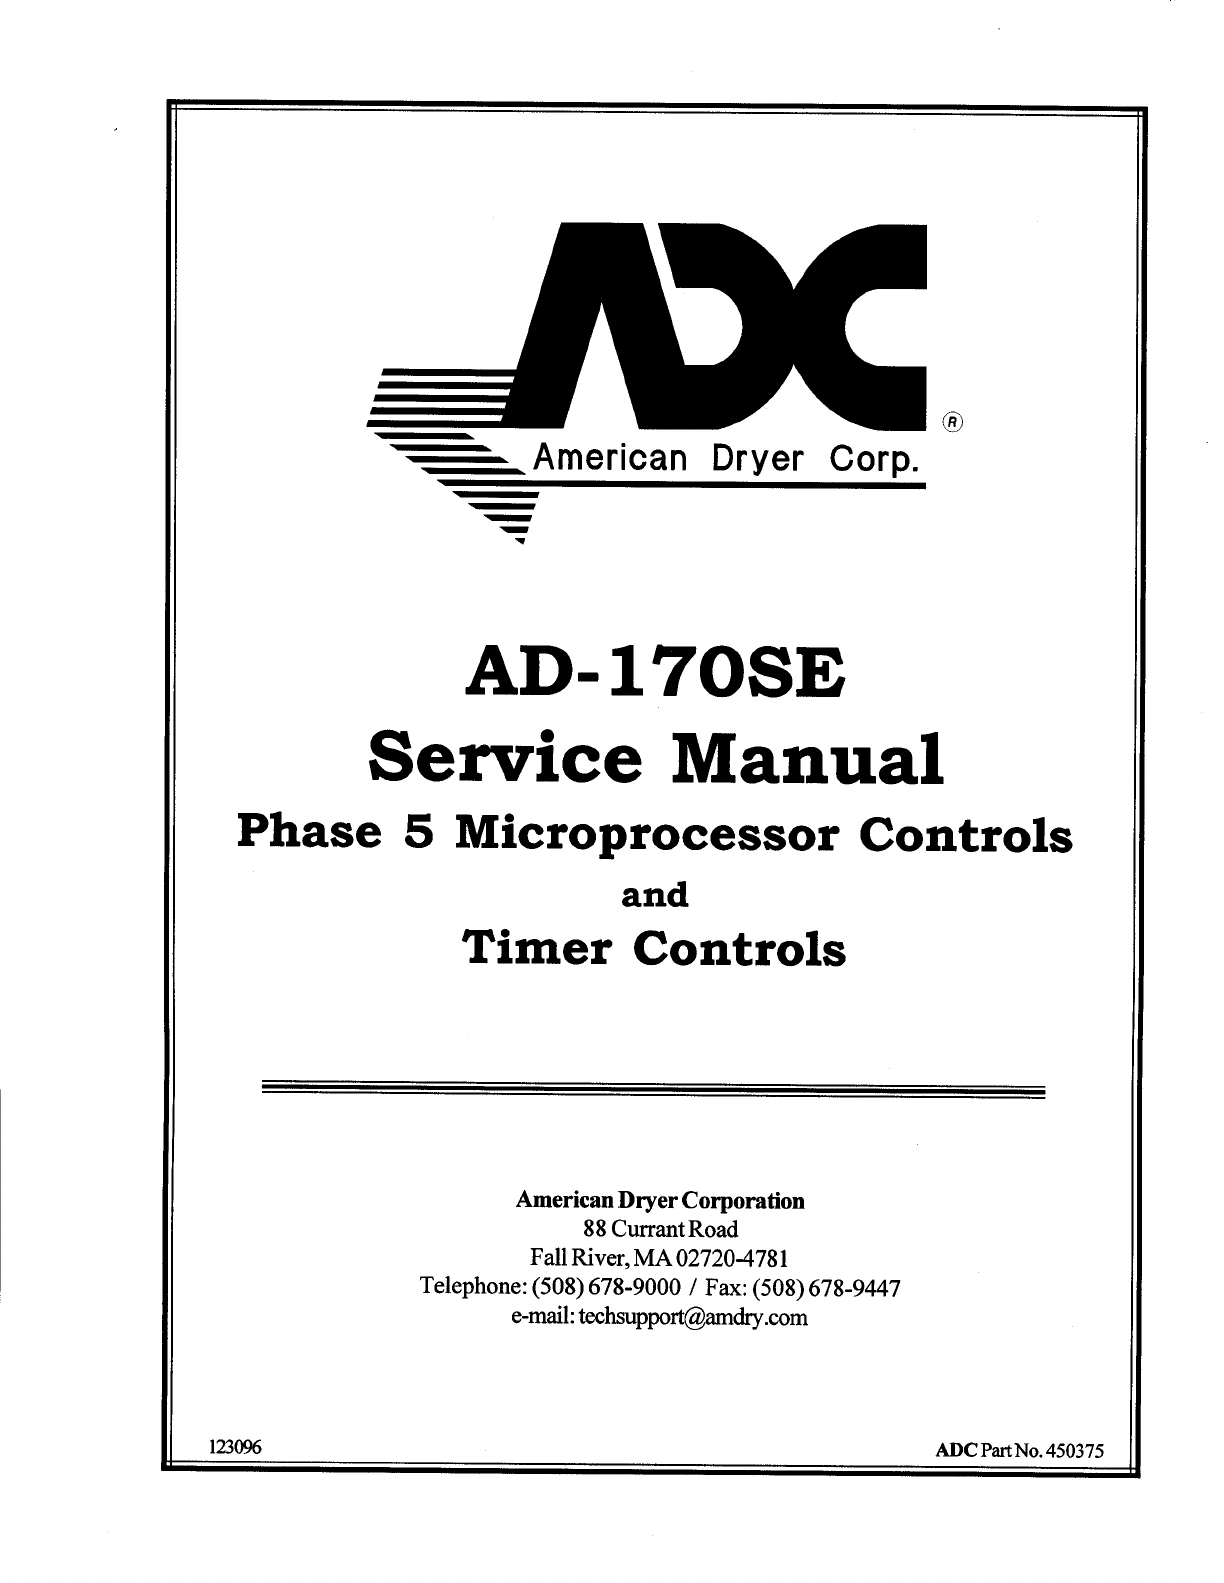 American Dryer Corp. Clothes Dryer AD-170SE User Guide